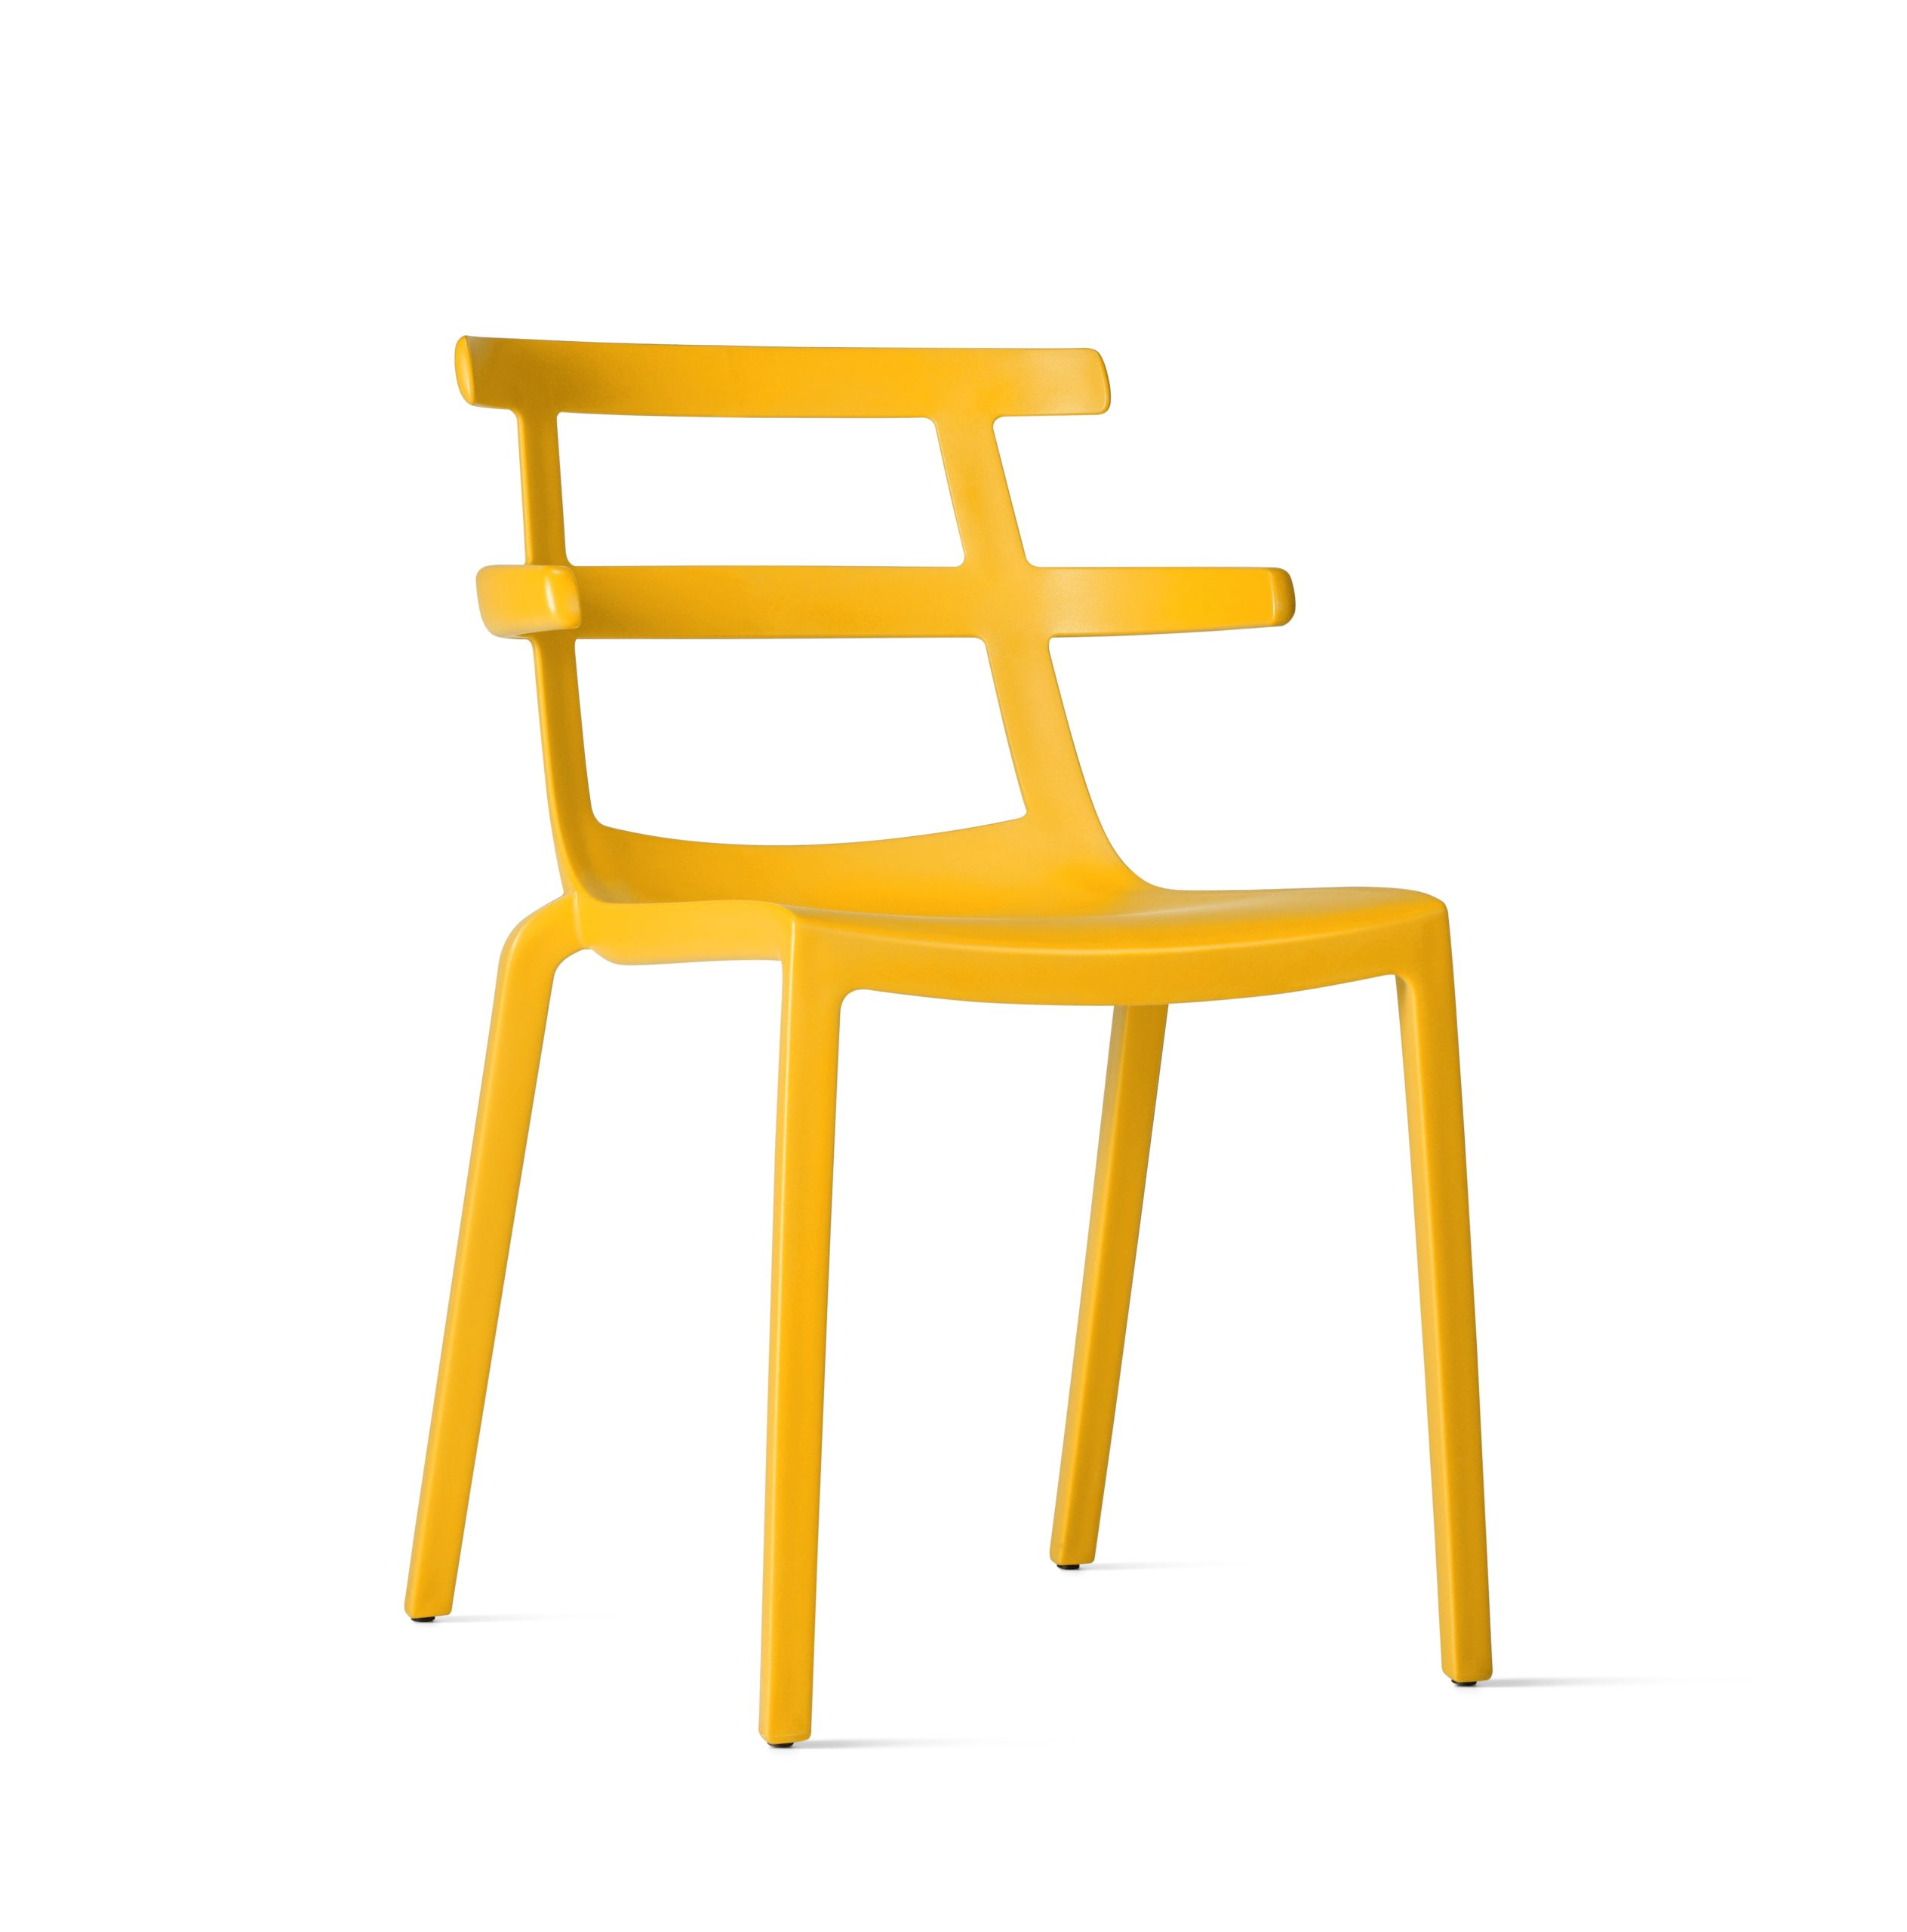 <p>Outdoor Furniture Contemporary Collection – Fresno Chair.</p> <p> </p> <p>Chair for indoor and outdoor use available in a variety of vibrant colours, with an oriental vibe, creating balance between lightness and functionality, capturing essential features such as lightness, functionality, ergonomics and care for the environment.</p>